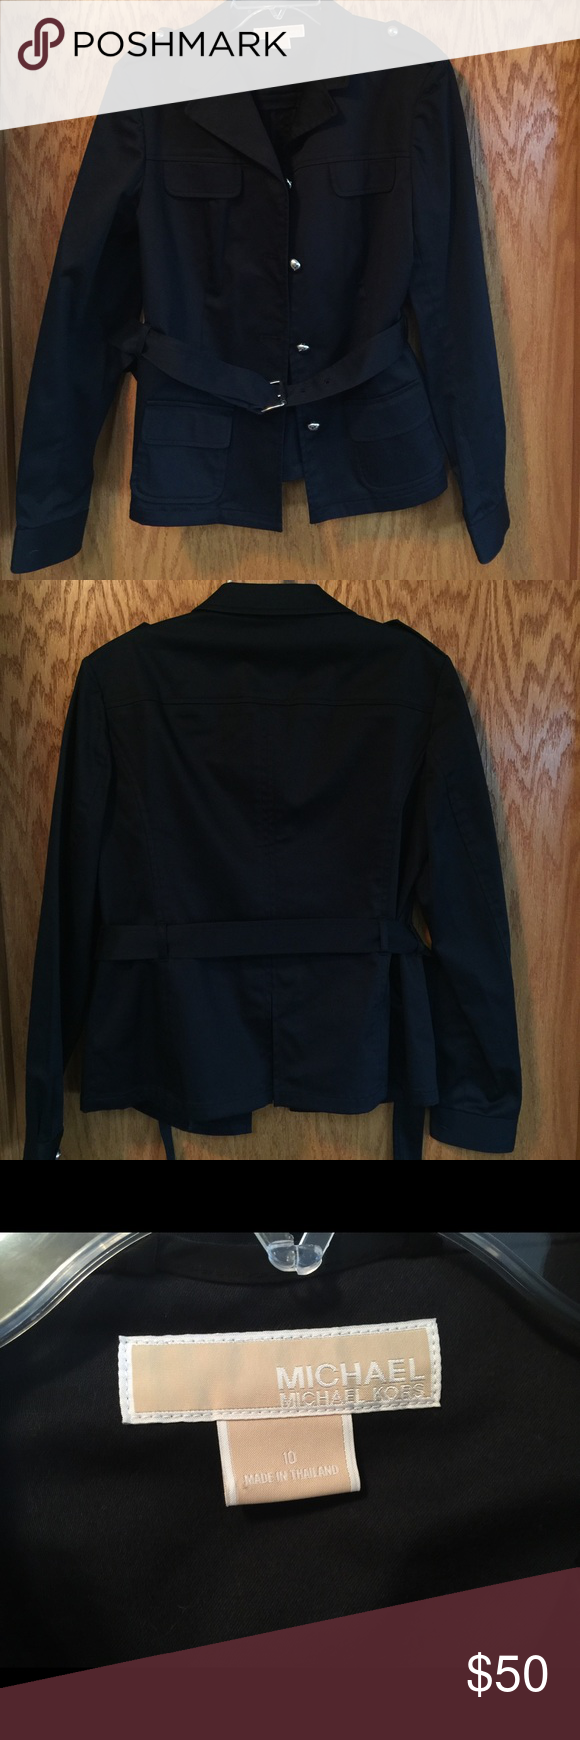 Michael Kors Navy lightweight jacket w belt. Sz 10 Michael Kors lightweight jacket with belt. Color is navy and has silver buttons. In excellent condition. Size 10. Michael Kors Jackets & Coats